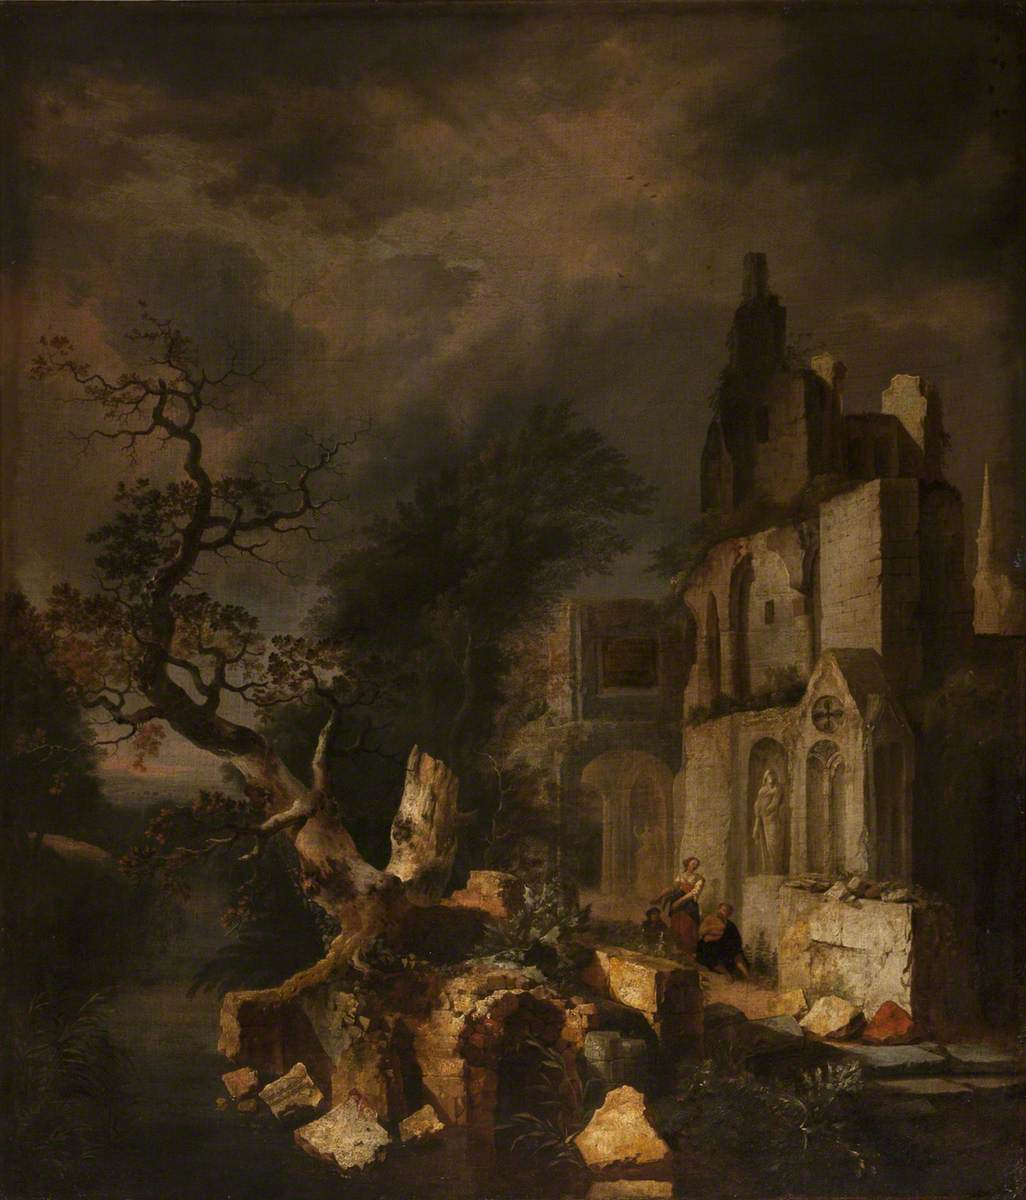 Landscape with Ruined Buildings and Figures